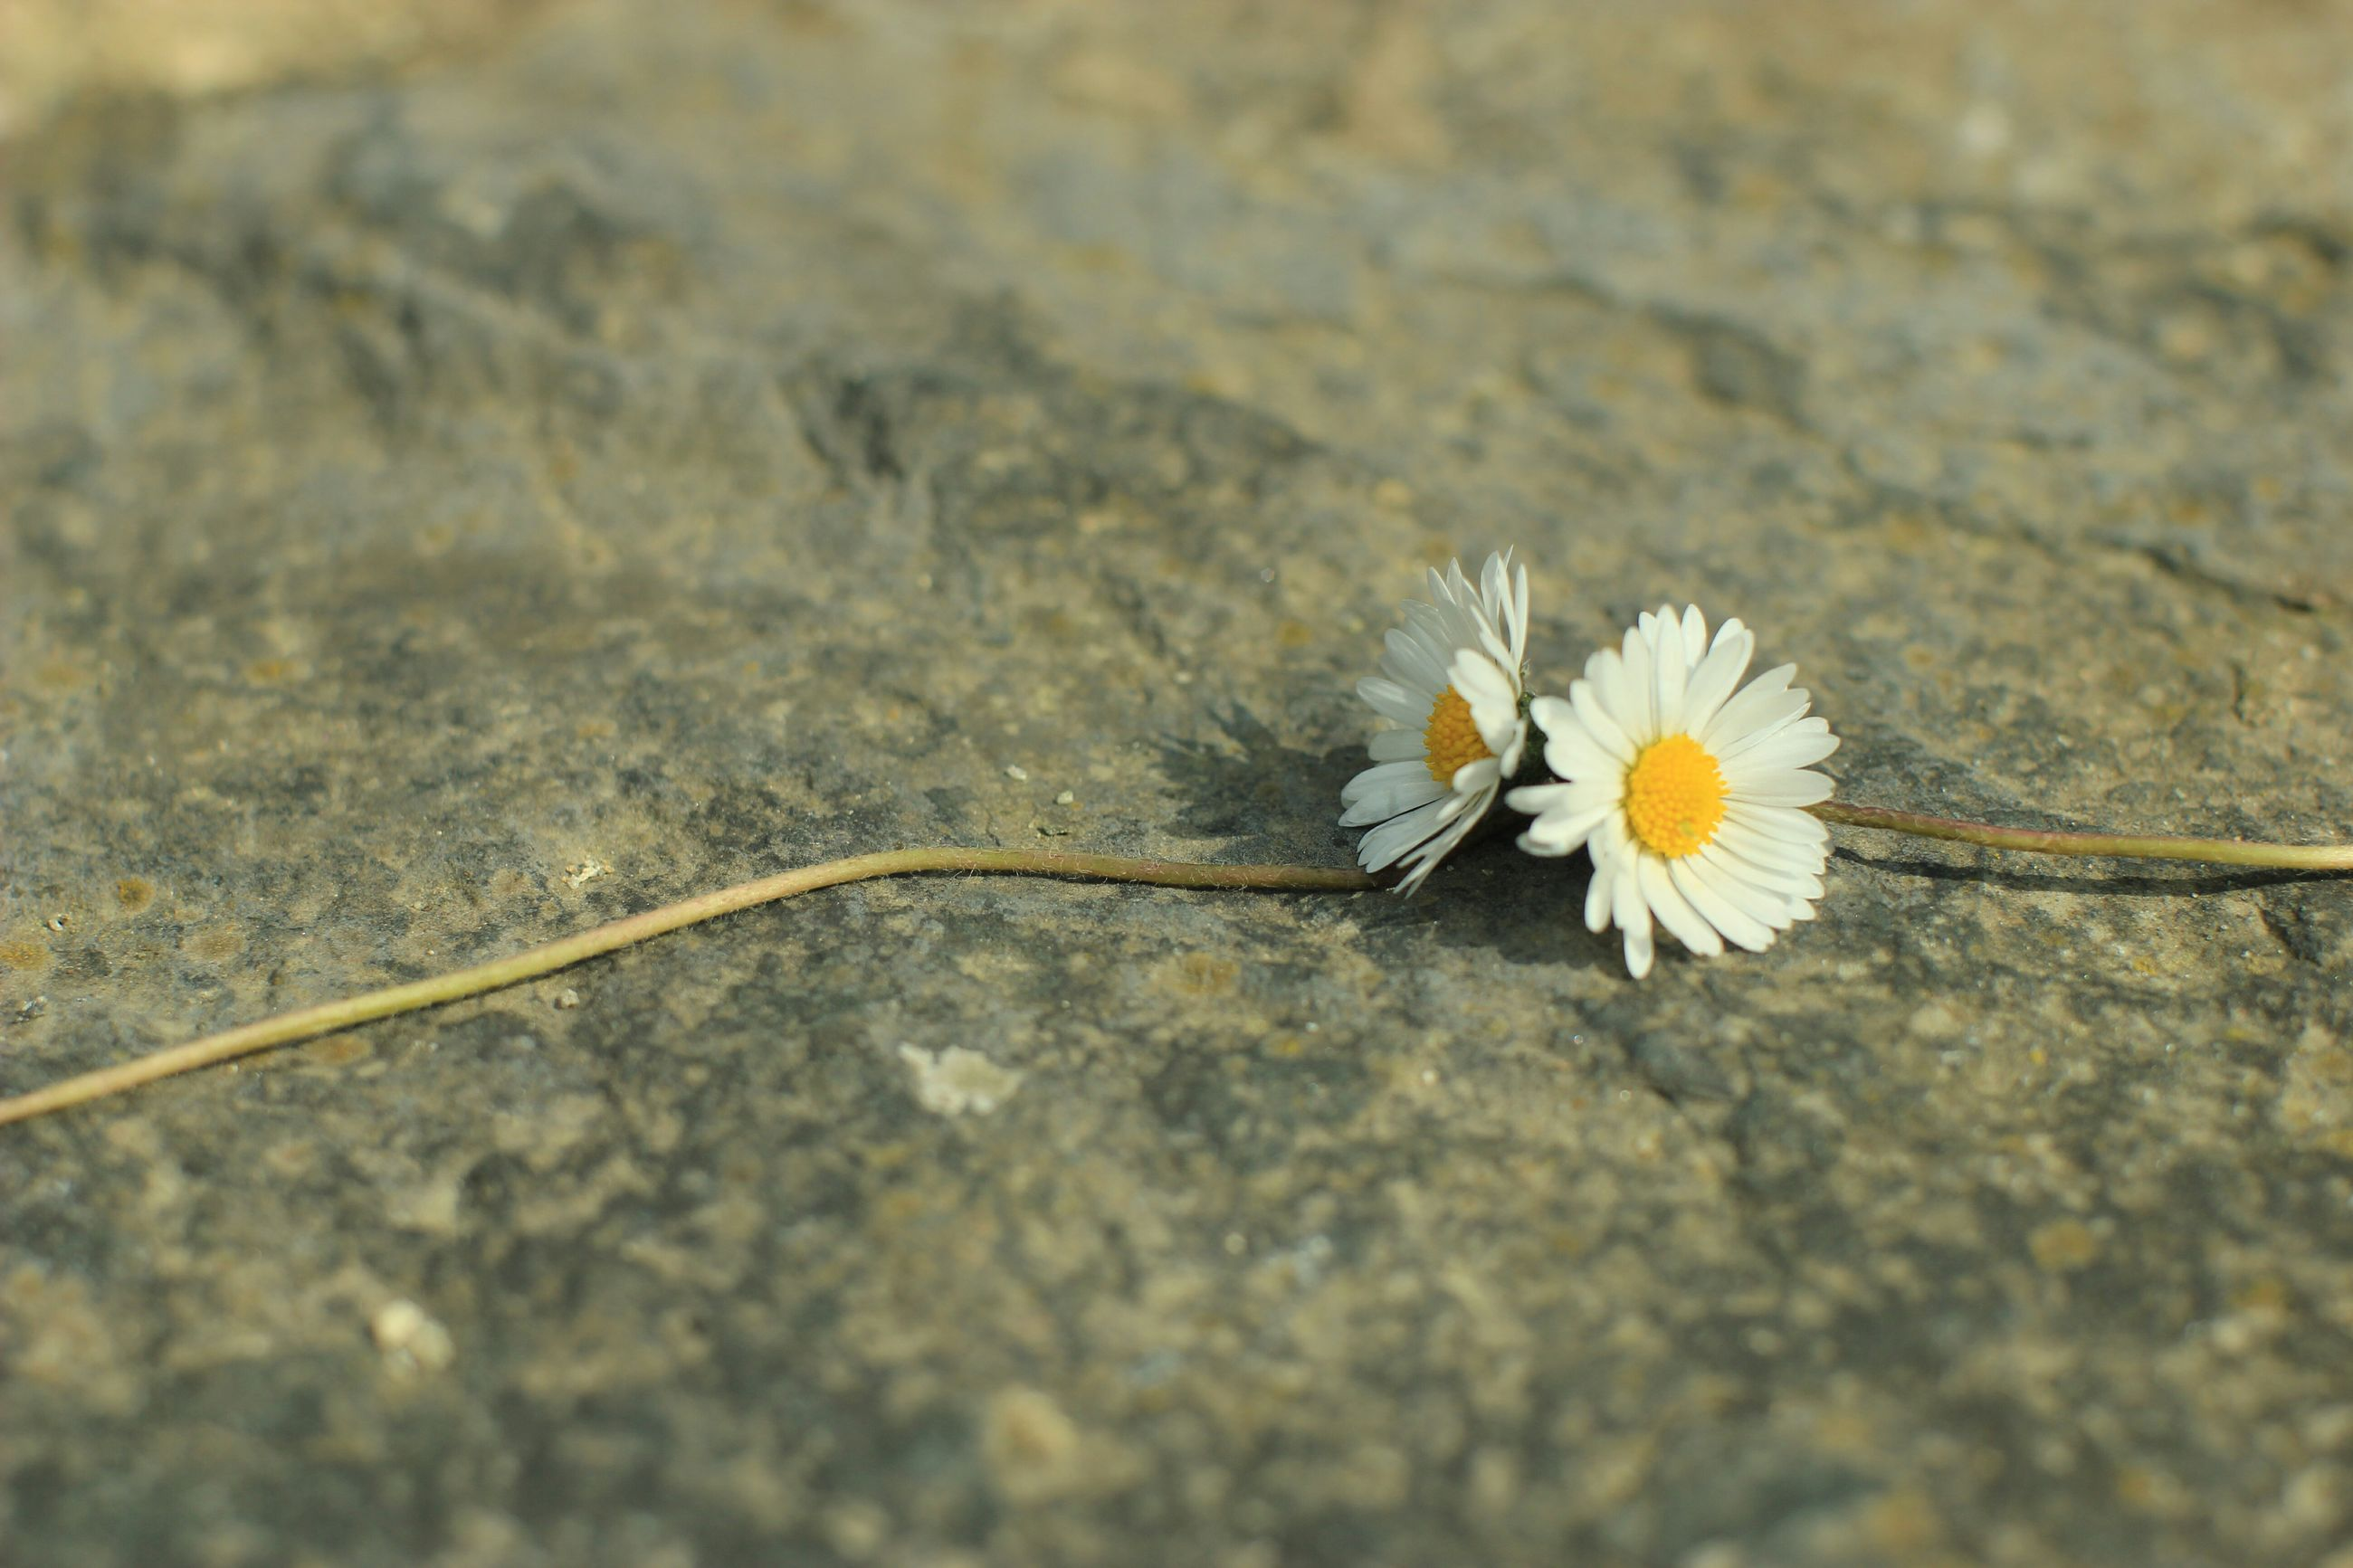 flower, fragility, petal, flower head, white color, freshness, nature, single flower, daisy, close-up, beauty in nature, pollen, insect, high angle view, growth, selective focus, plant, blooming, focus on foreground, outdoors